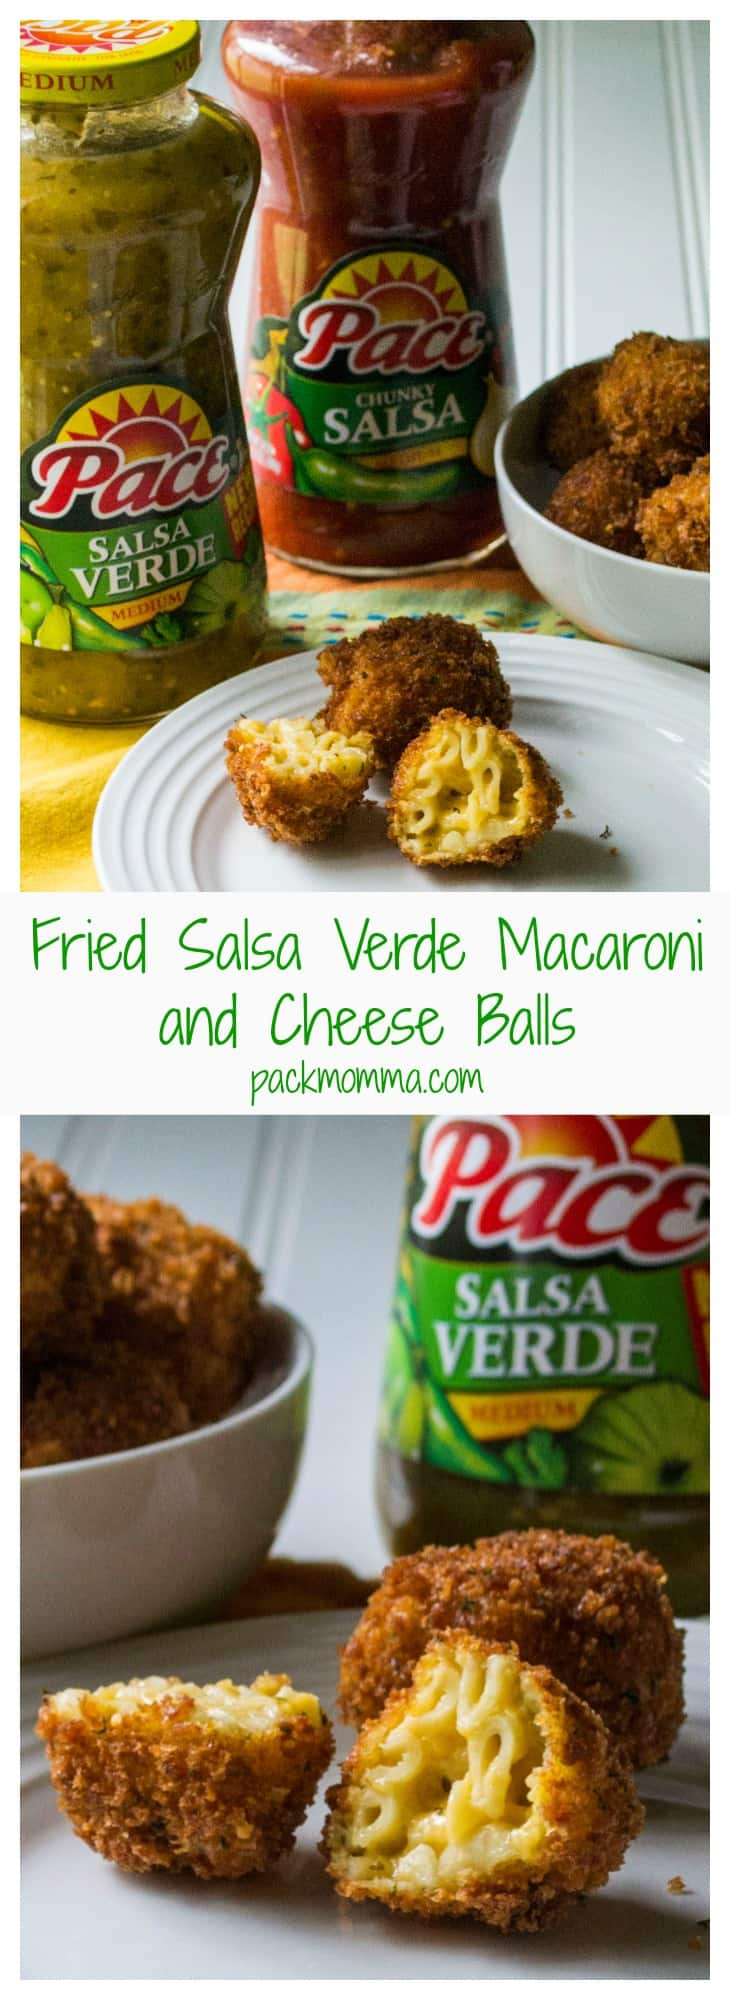 Fried Salsa Verde Macaroni and Cheese Balls | Fried Salsa Verde Macaroni and Cheese Balls are perfect Game Day appetizers with a crispy outside and creamy cheesy southwest mac n cheese on the inside! #MakeGameTimeSaucy #CollectiveBias #Ad | Pack Momma | www.packmomma.com